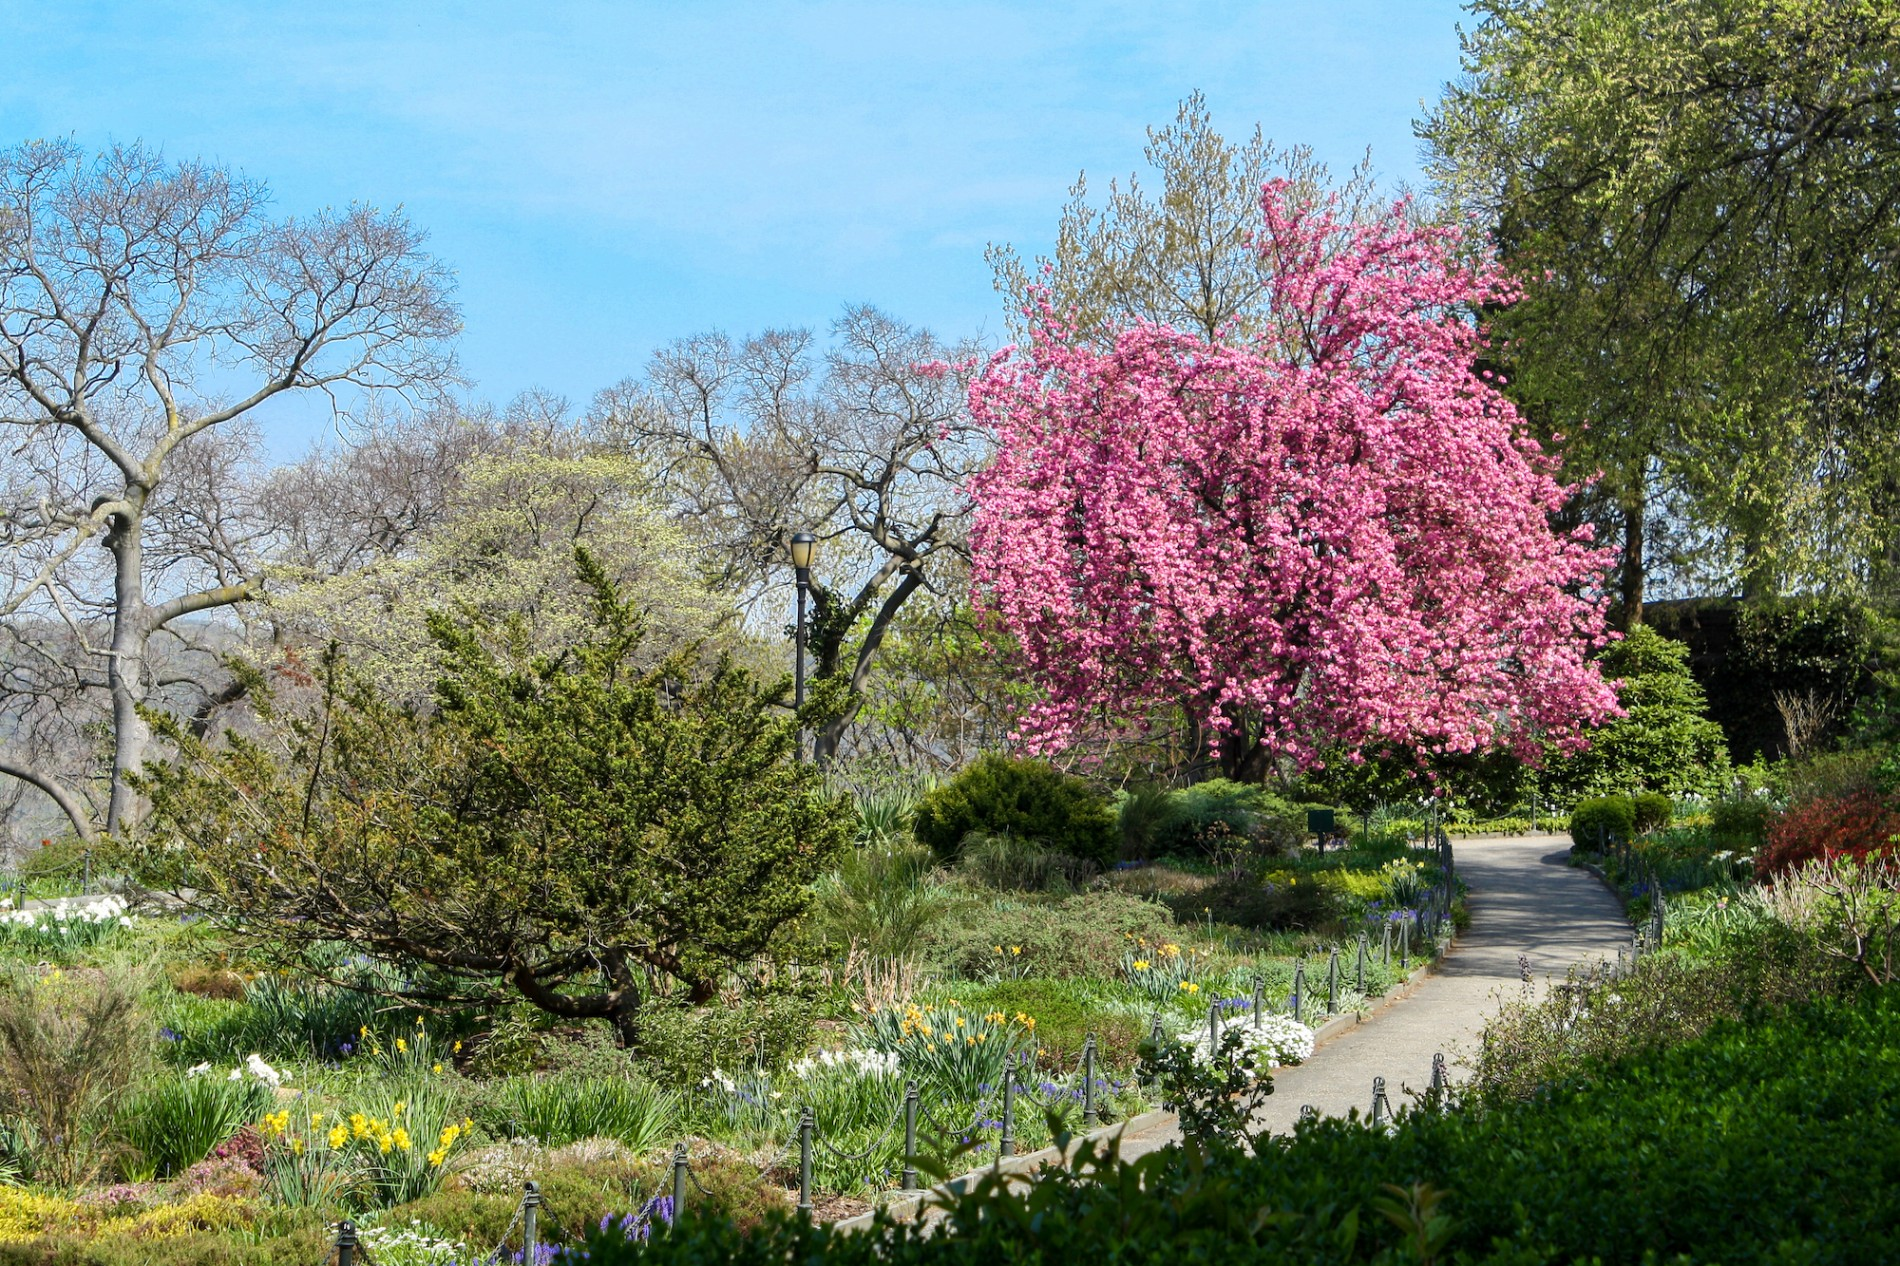 Heather and cherry blossoms in Fort Tryon Park's heather garden